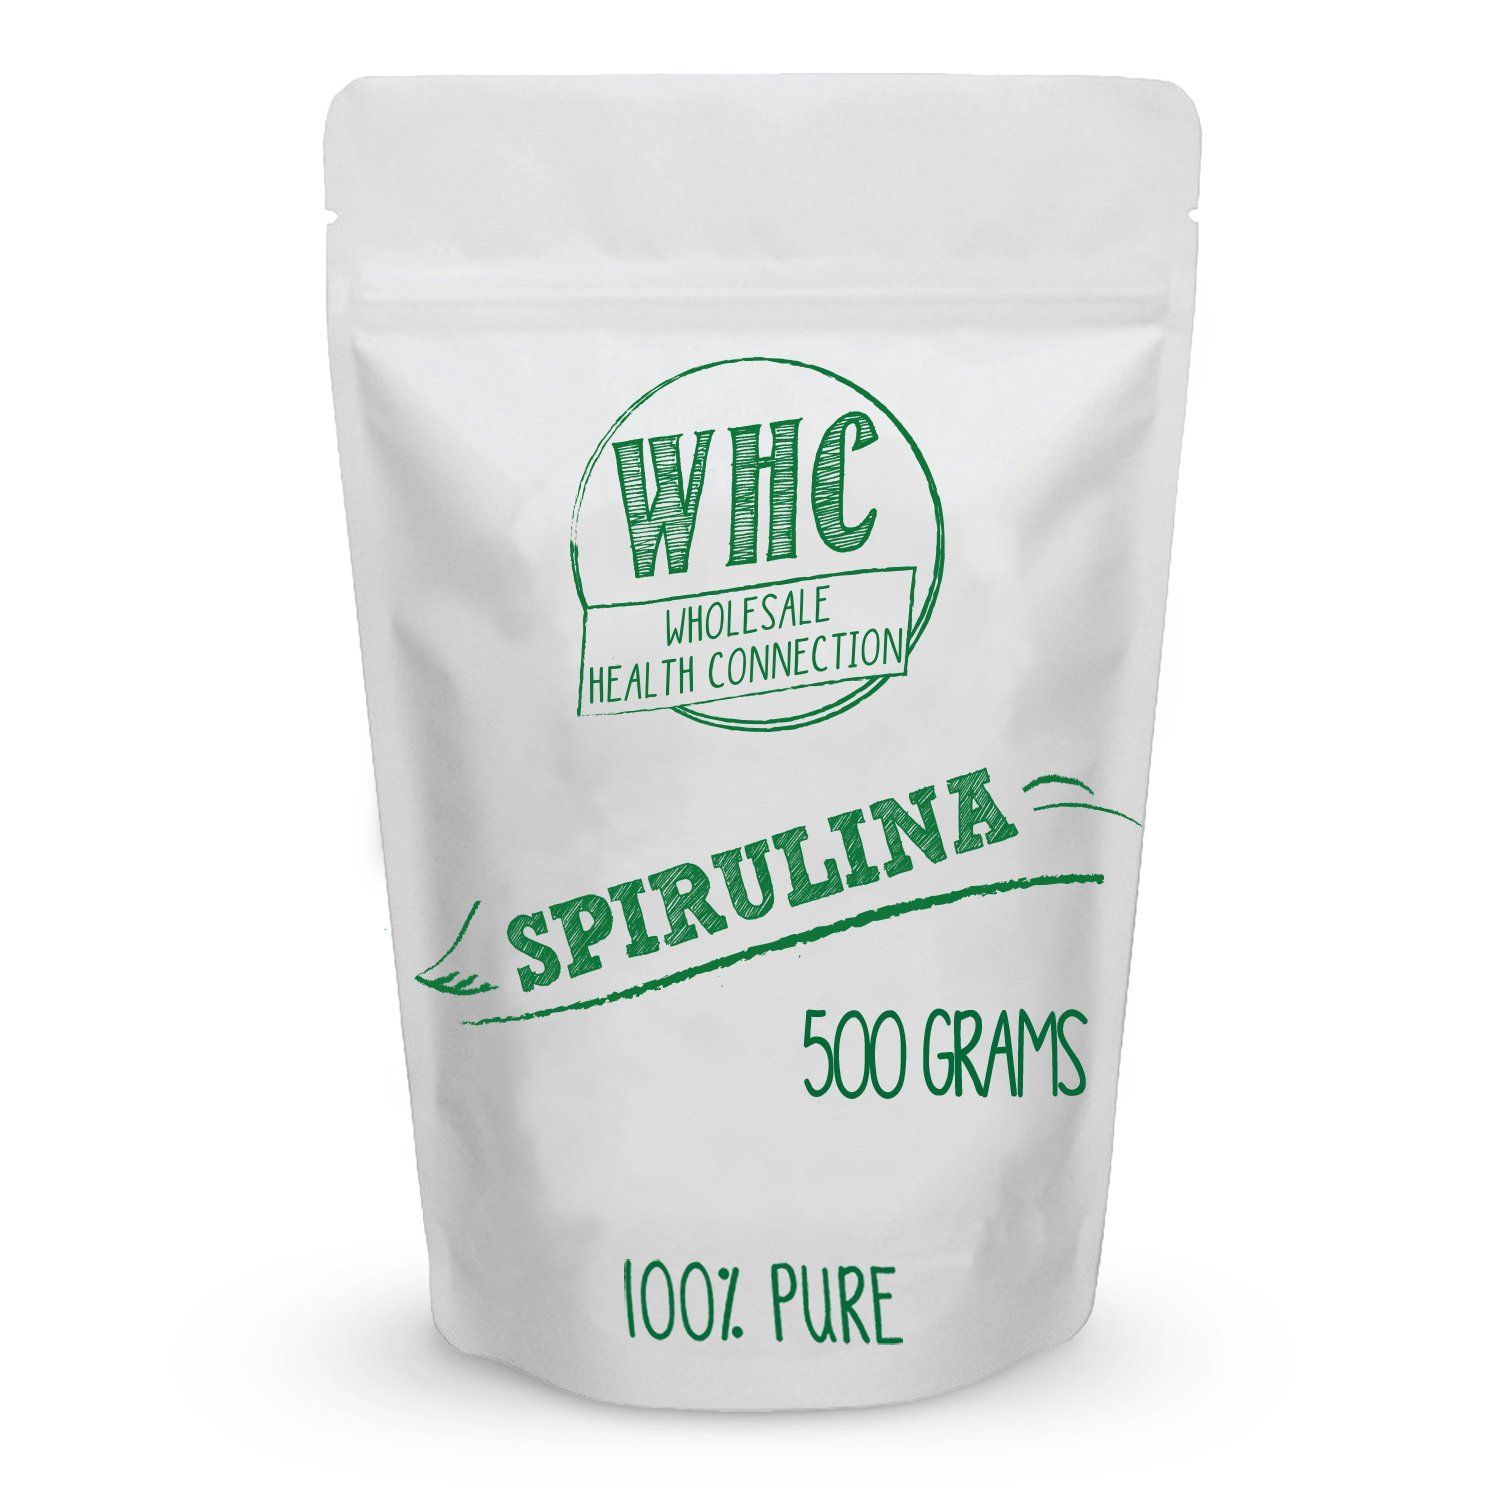 Spirulina Powder 500g (167 Servings) | Super Food | Vegan Protein Source | Vitamin, Minerals, and Carotenoids | Antioxidant | Anti Inflammatory | Helps Protect Heart and Liver